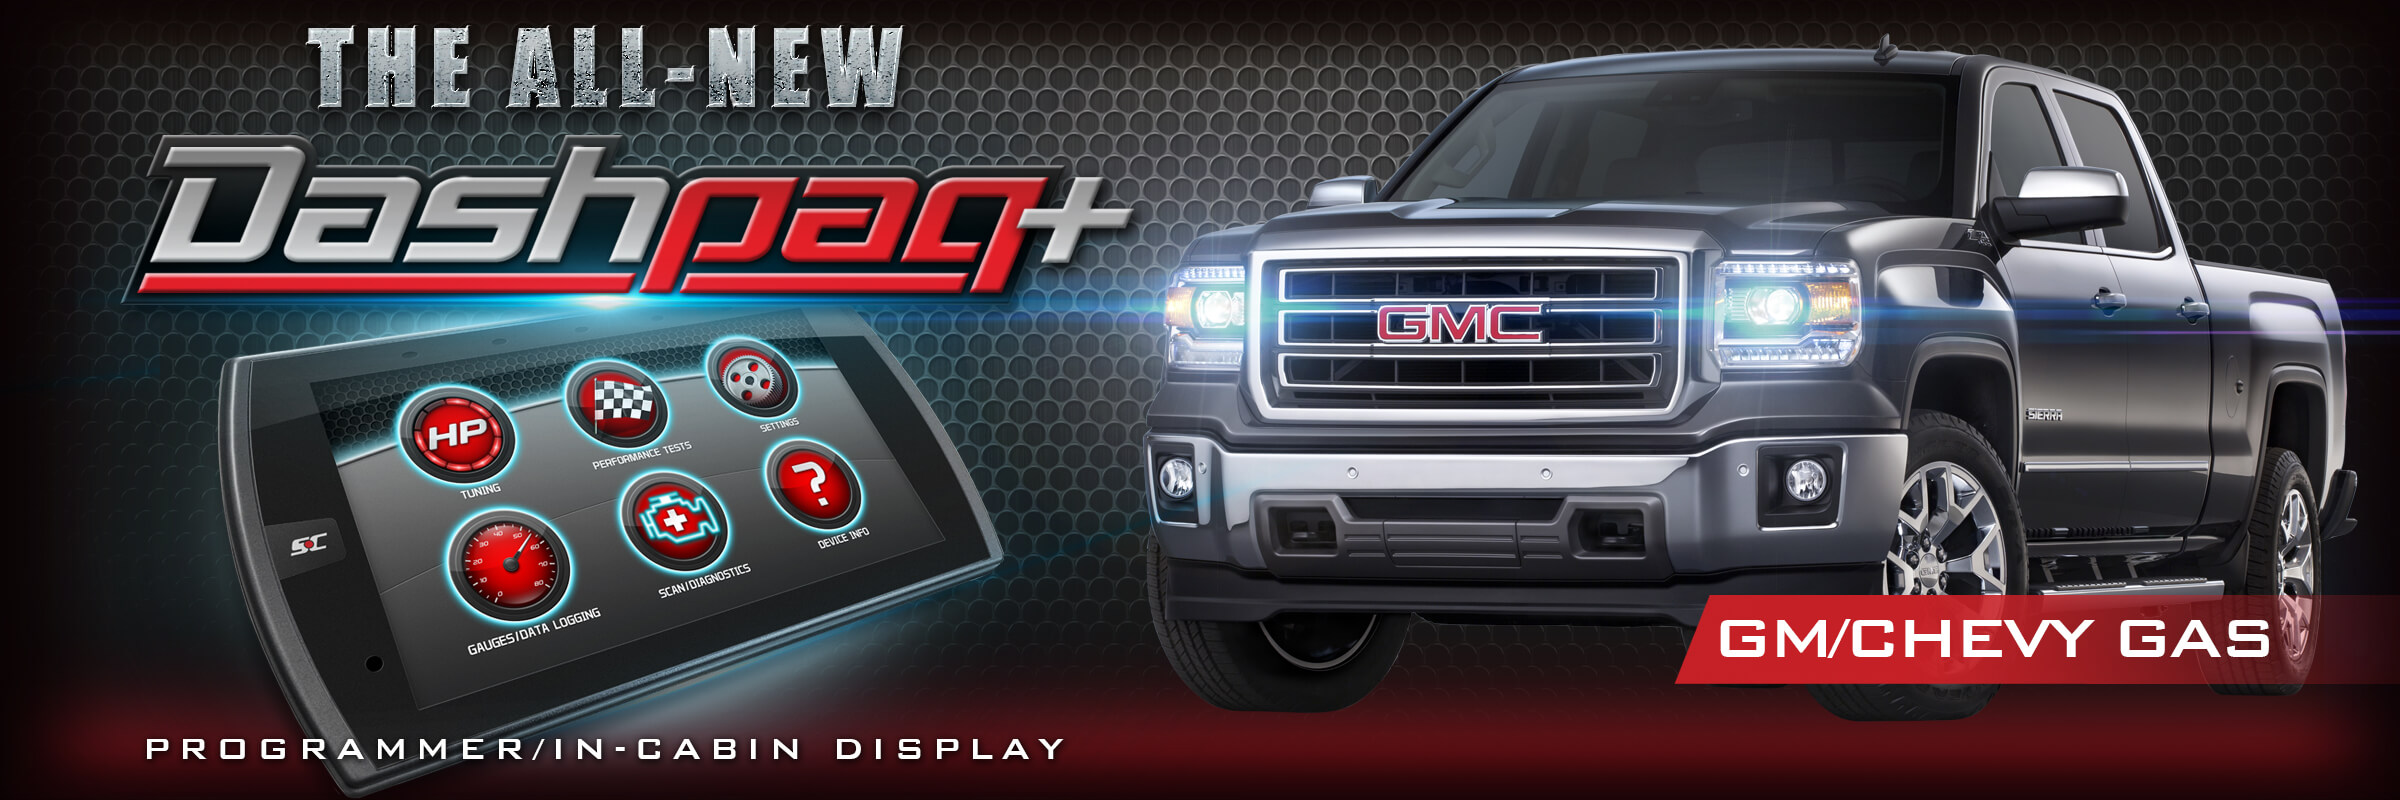 add a silverado tuner or gmc sierra programmer explore performance upgrades from superchips add a silverado tuner or gmc sierra